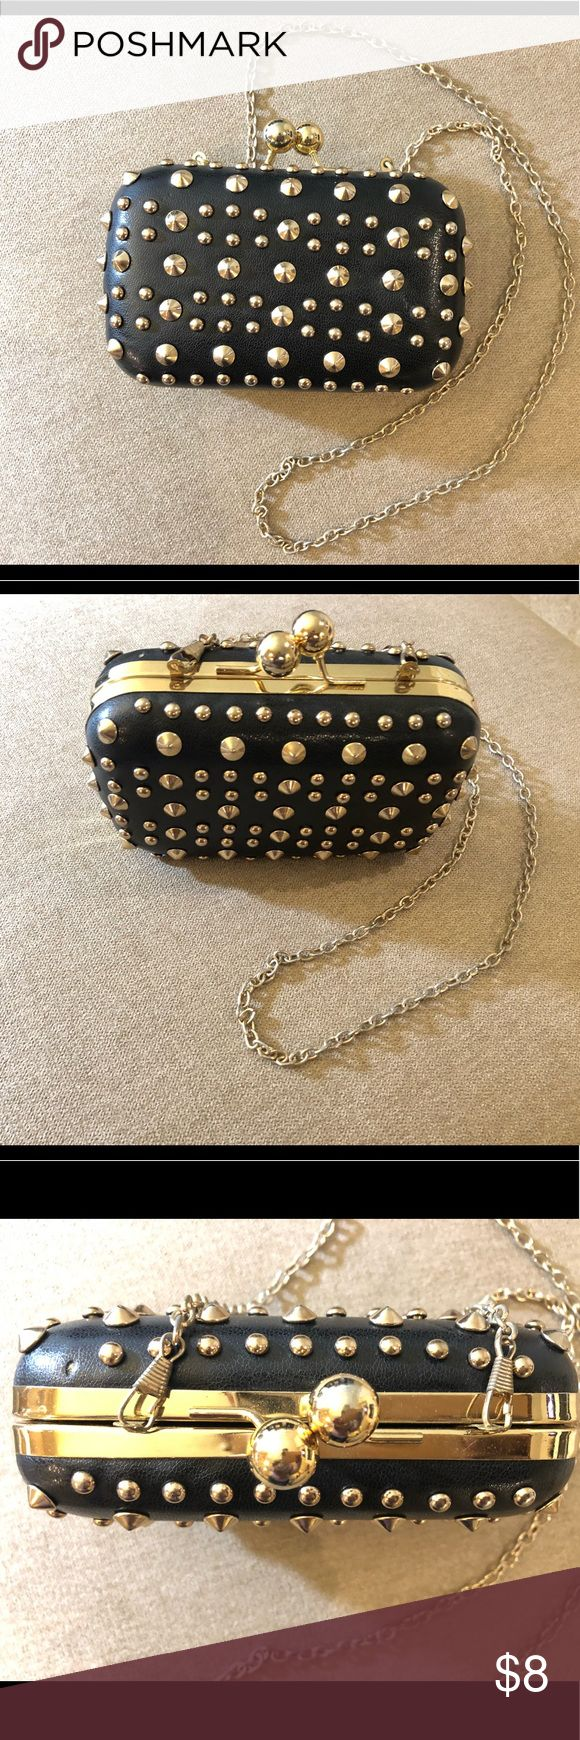 """Studded Gold and Black Clutch Small black leather clutch with gold studs. Perfect for a night out. Measures 6"""" by 4"""" and has a thin gold chain which can be removed. Has some minor signs of wear. MMS Design Studio Bags Clutches & Wristlets"""